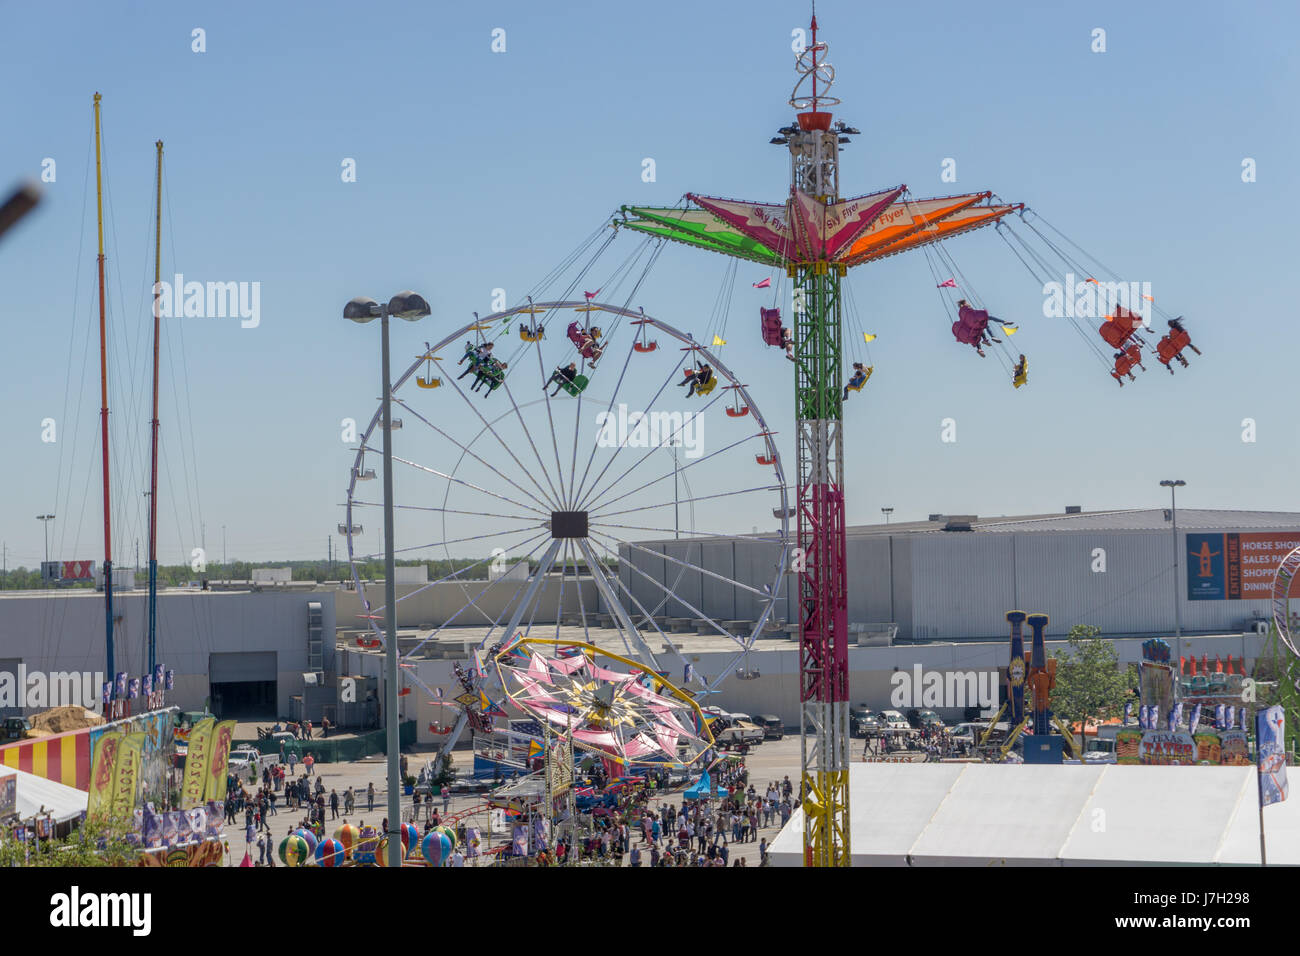 Carnival rides at the Houston Livestock Show and Rodeo Stock Photo